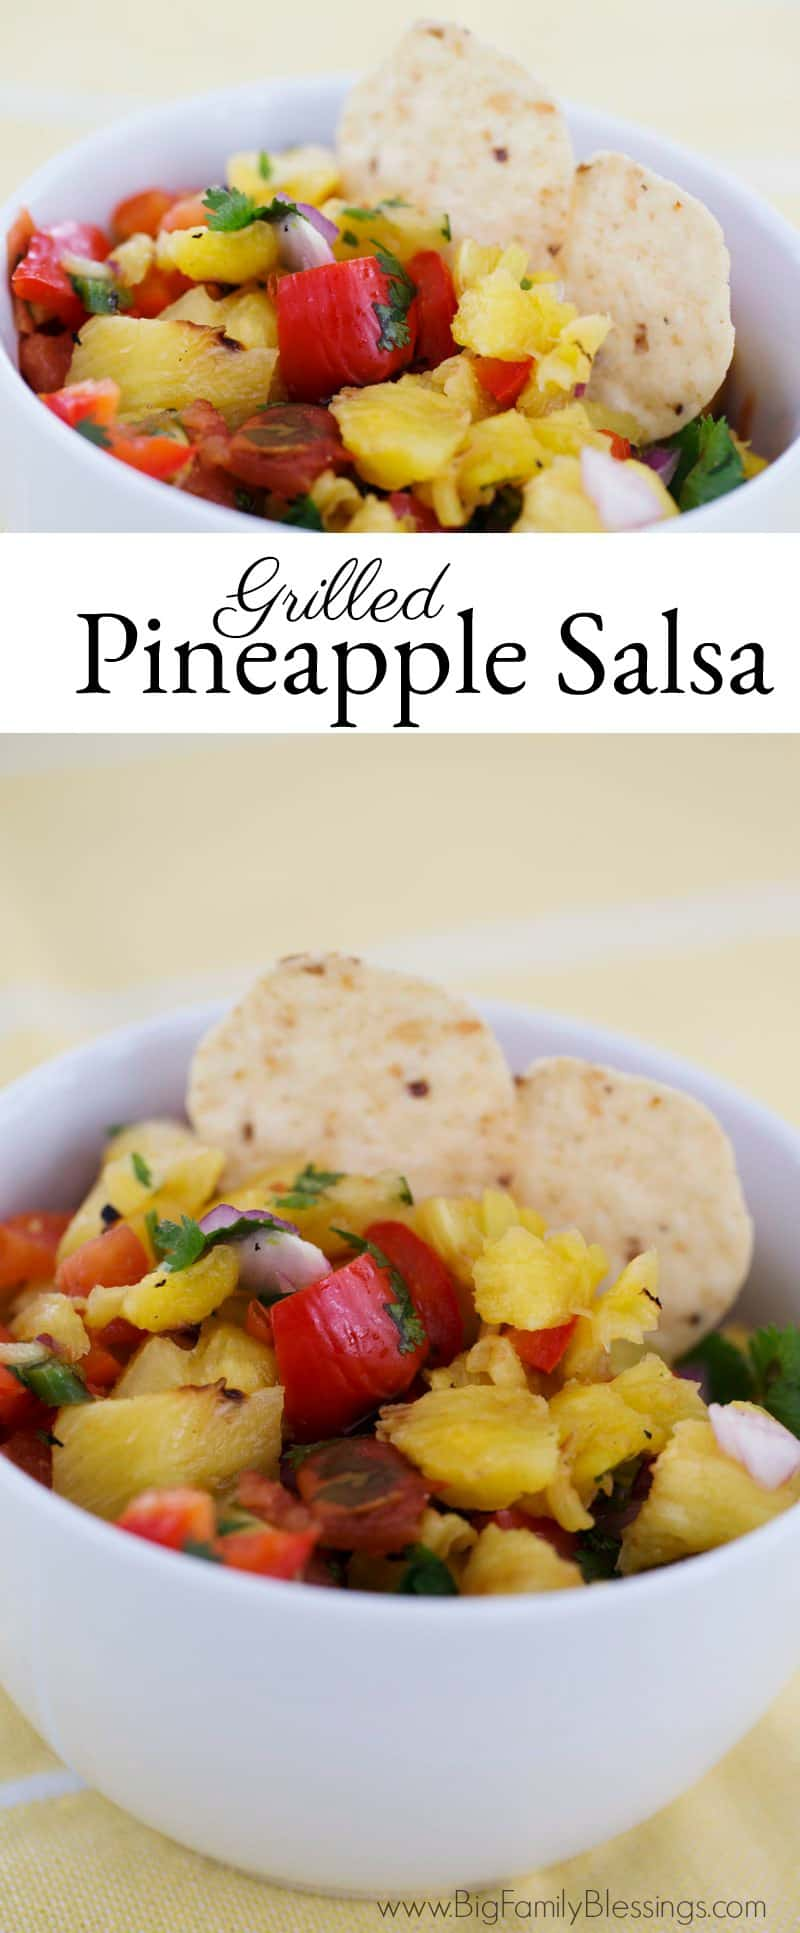 Grilled Pineapple Salsa - absolutely delicious and so simple to prepare. From grill to the table in less than 30 minutes!